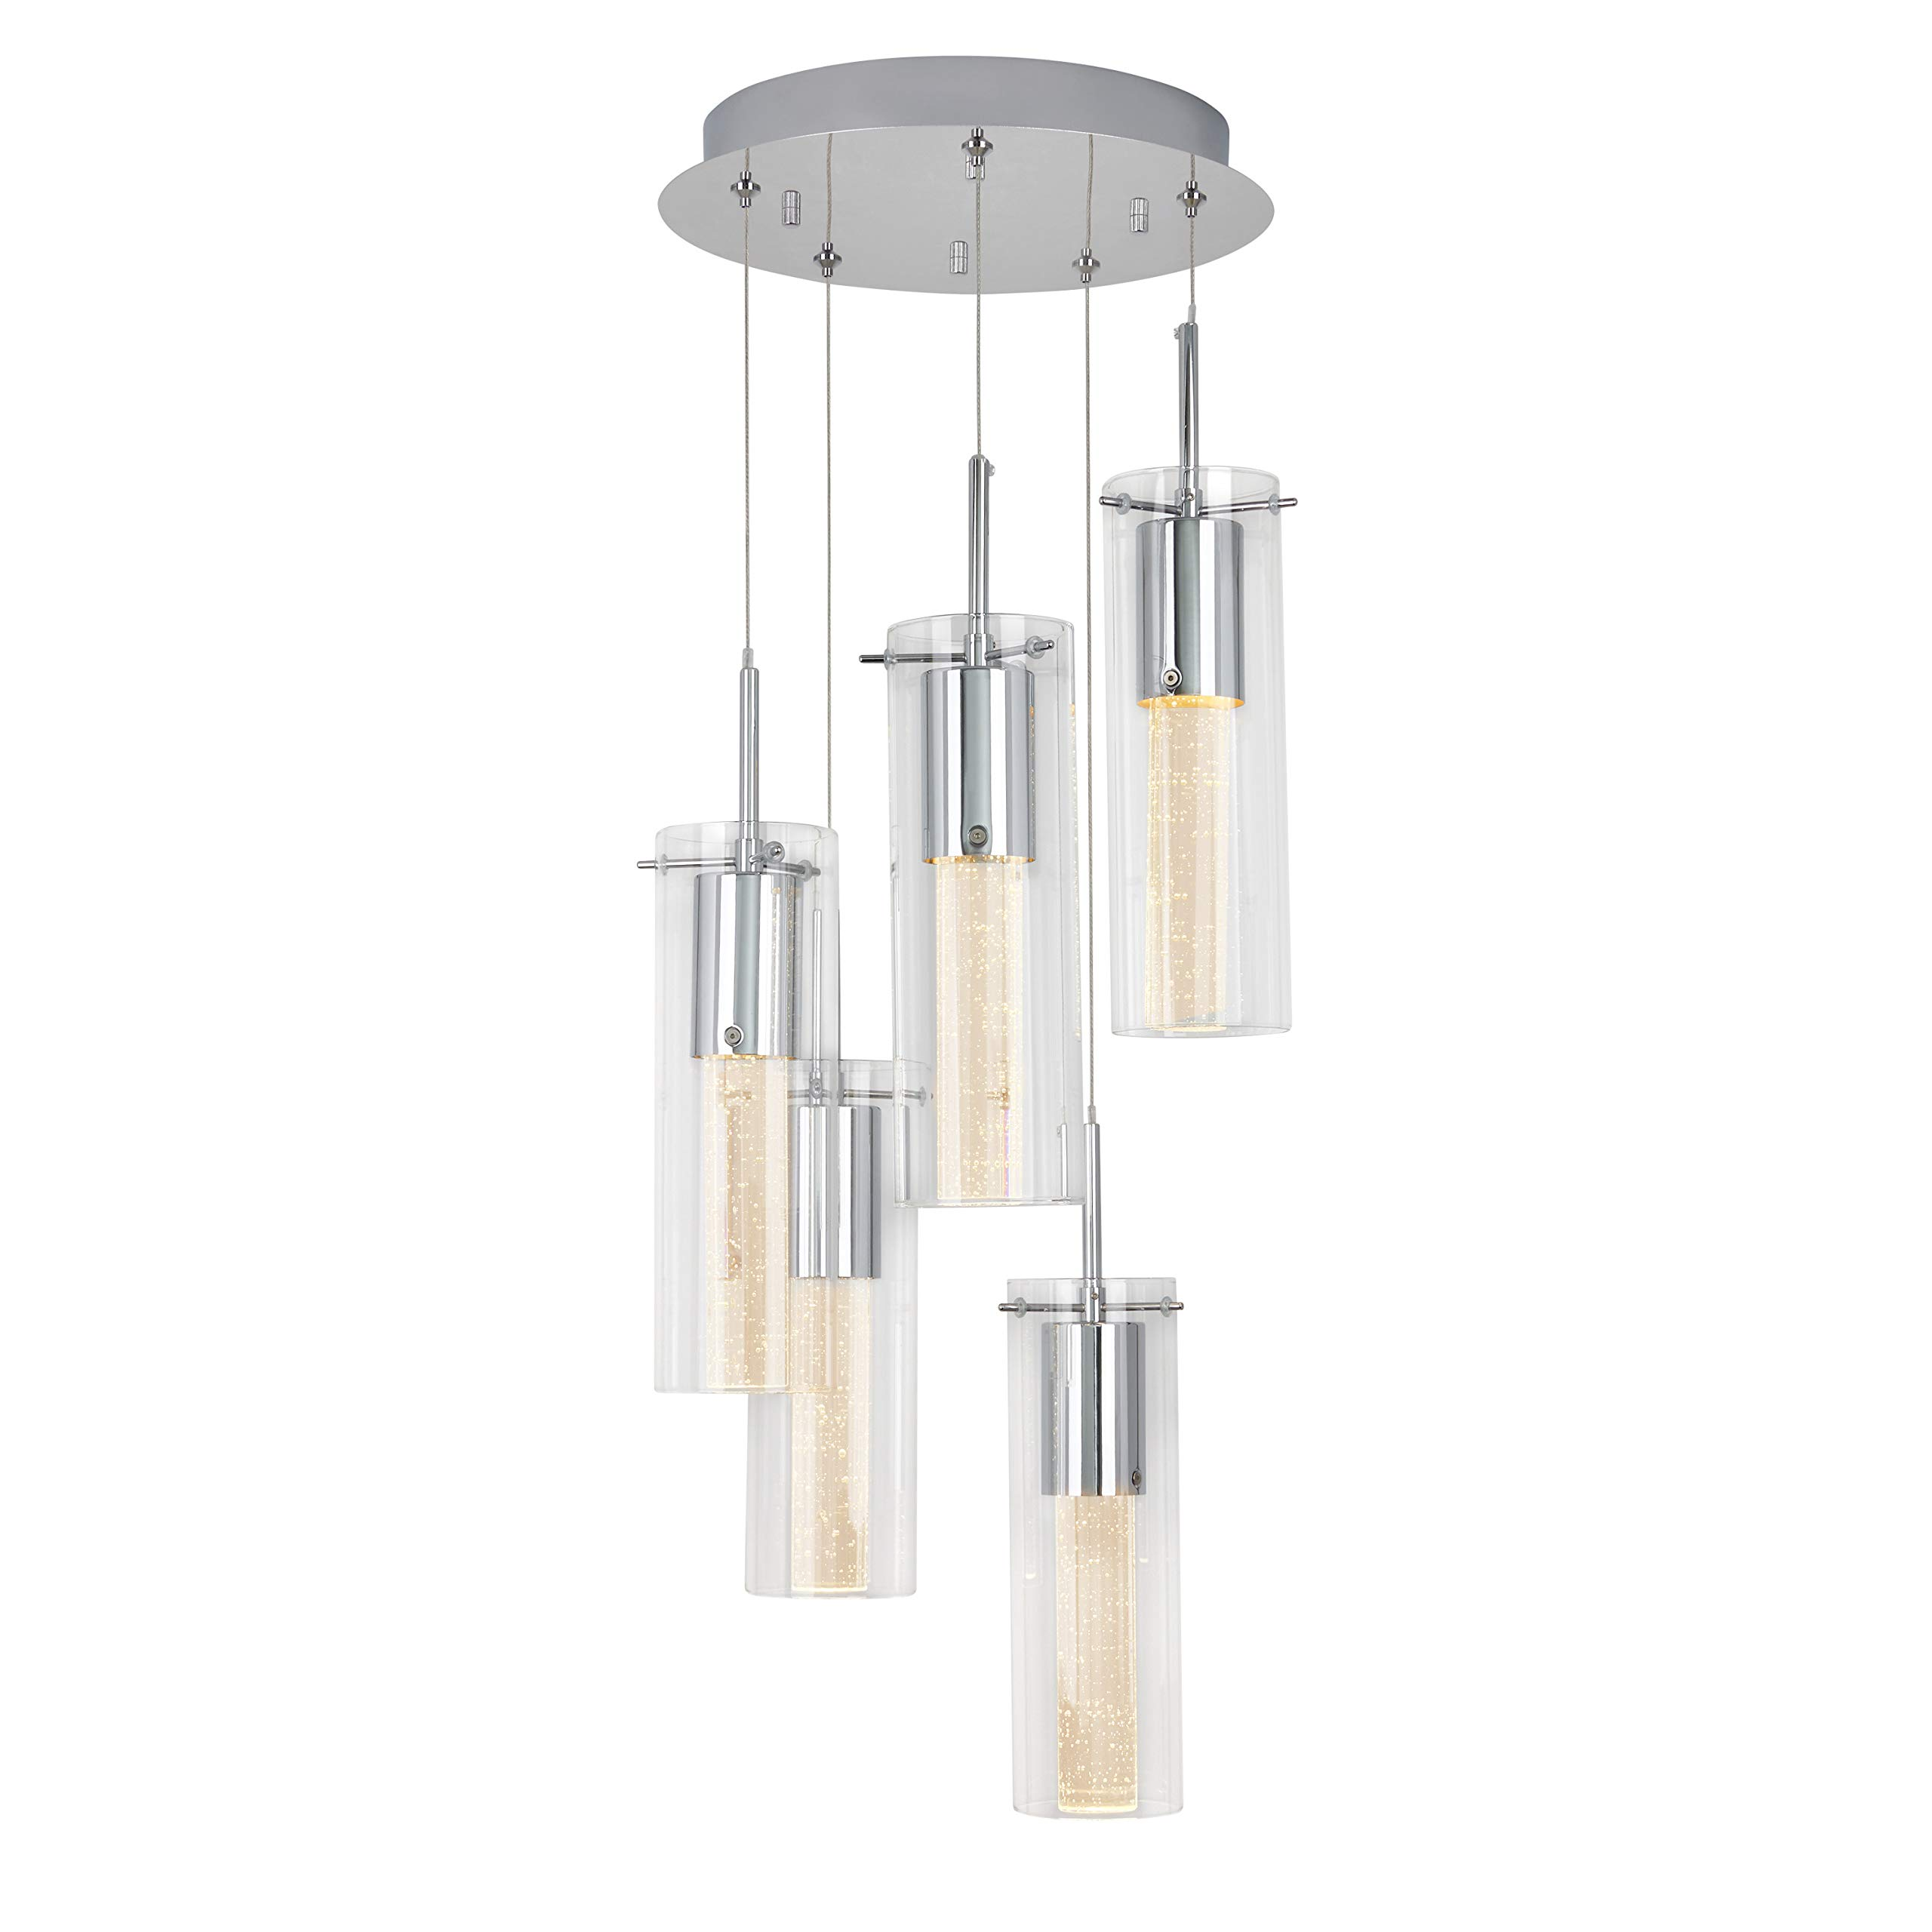 Artika OME64B-HD2 Essence Spiral 5-Pendants Indoor Light Fixture with Integrated Led with Premium Glass and Dimmable, Chrome Finish